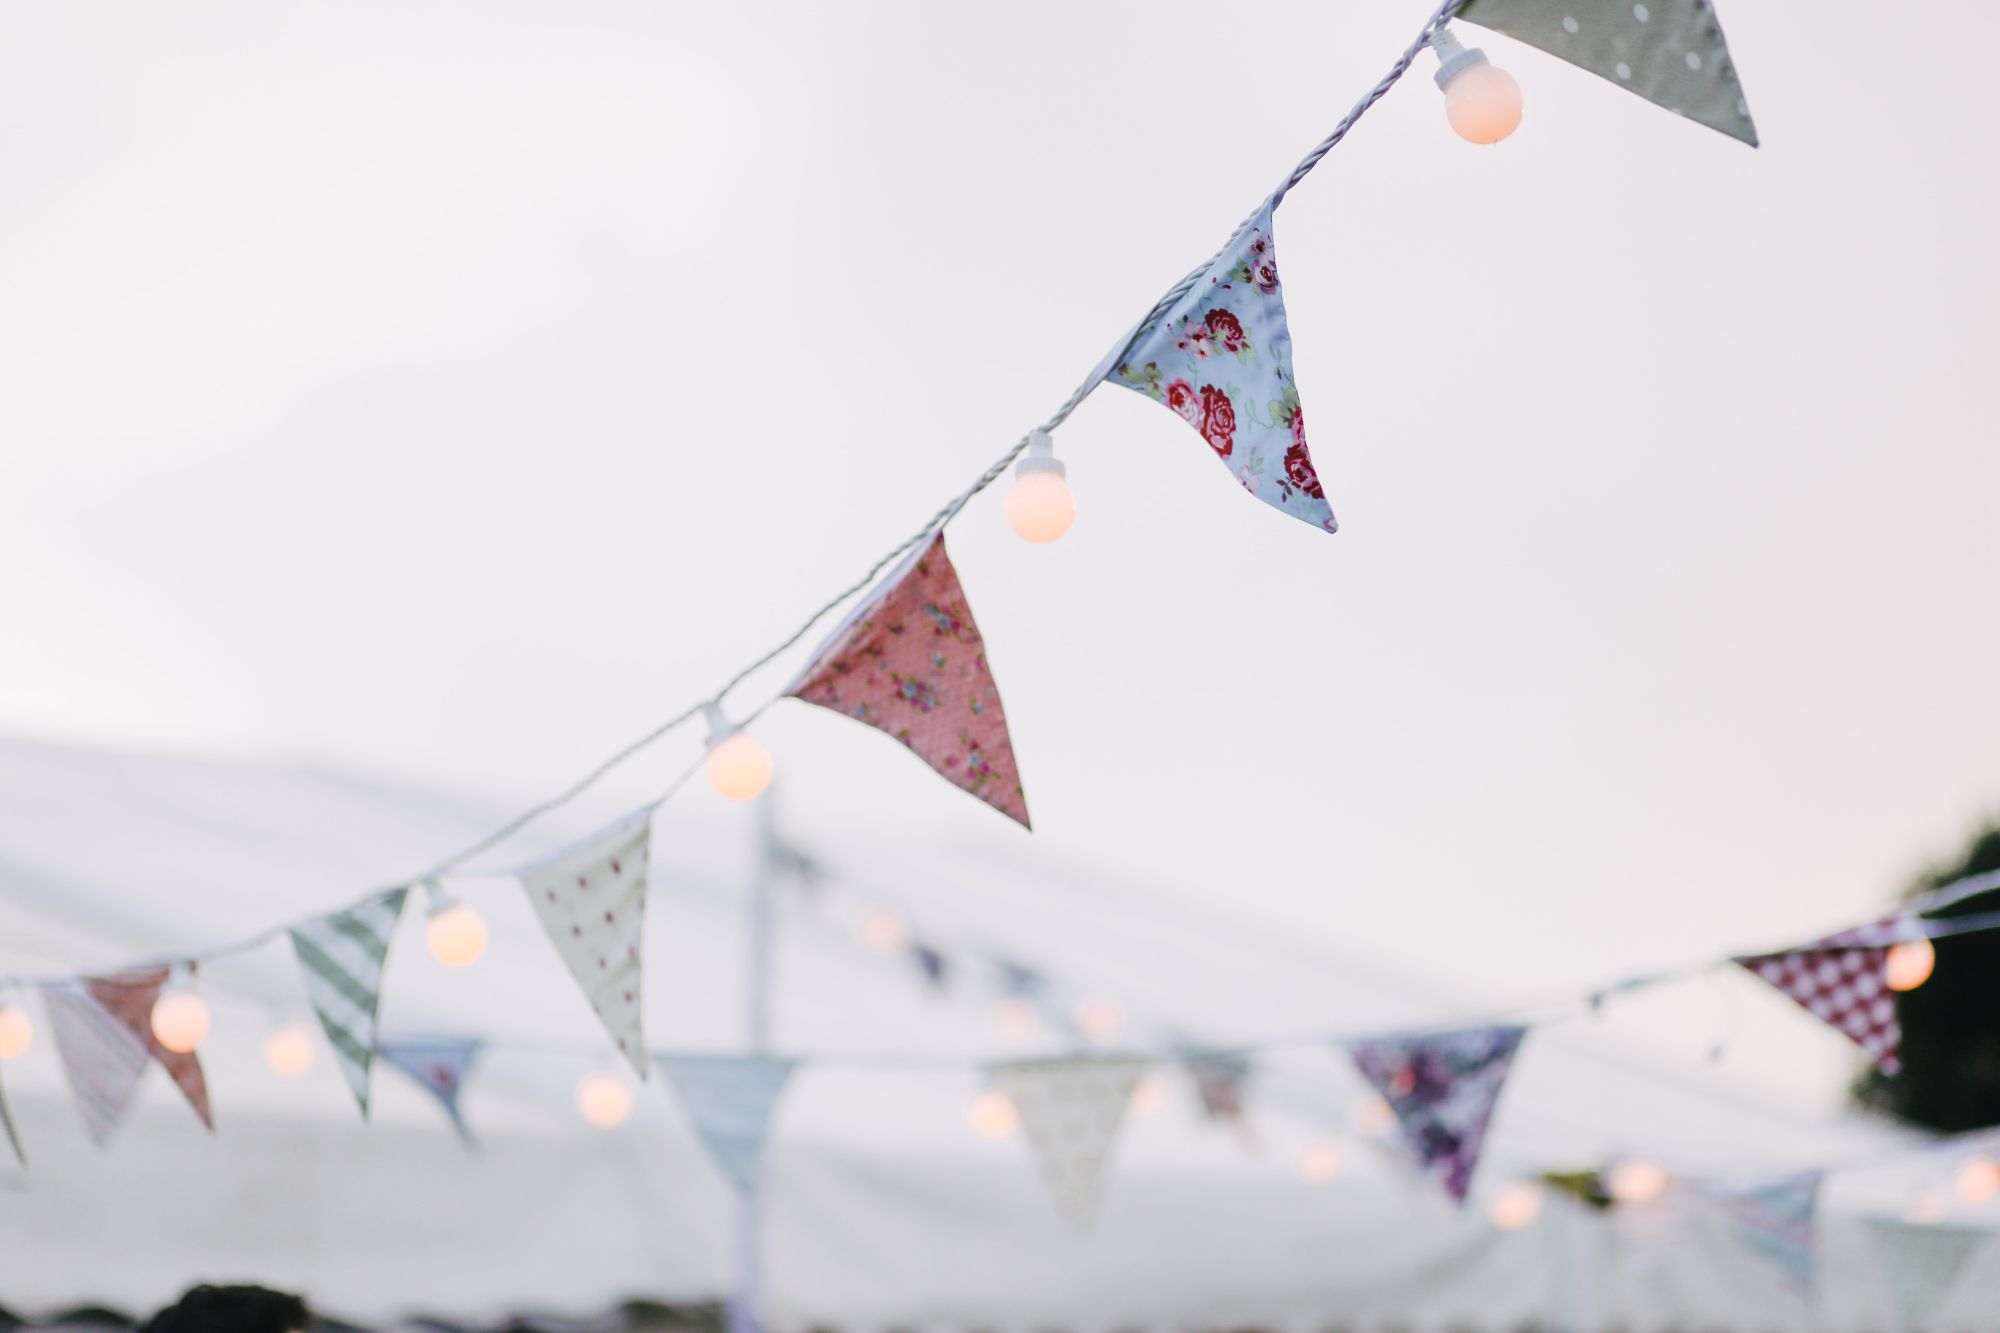 bUNTING AND FESTOON LIGHTS